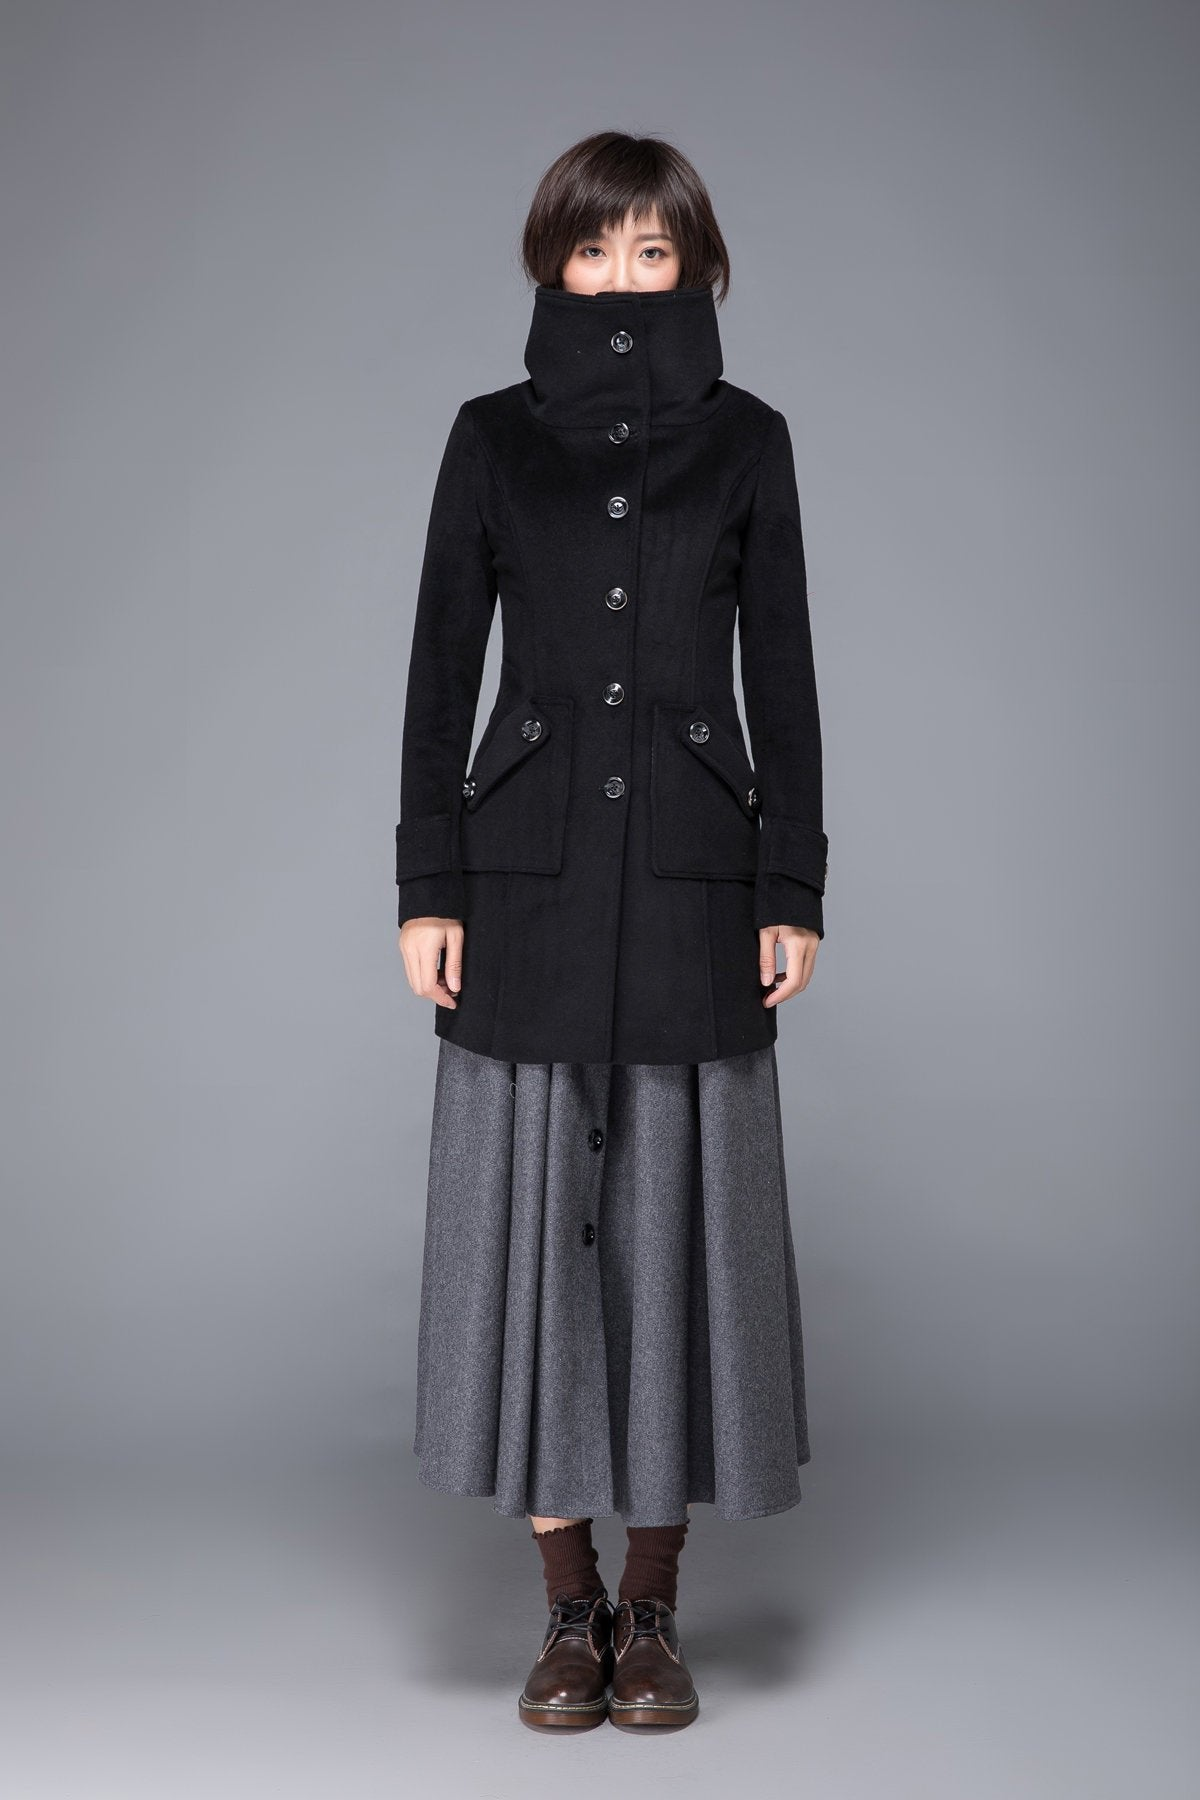 black coat, wool coat, womens coat, winter coat, Military coat, warm coat, black wool coat, Coat with pockets, Warm wool coat C1231